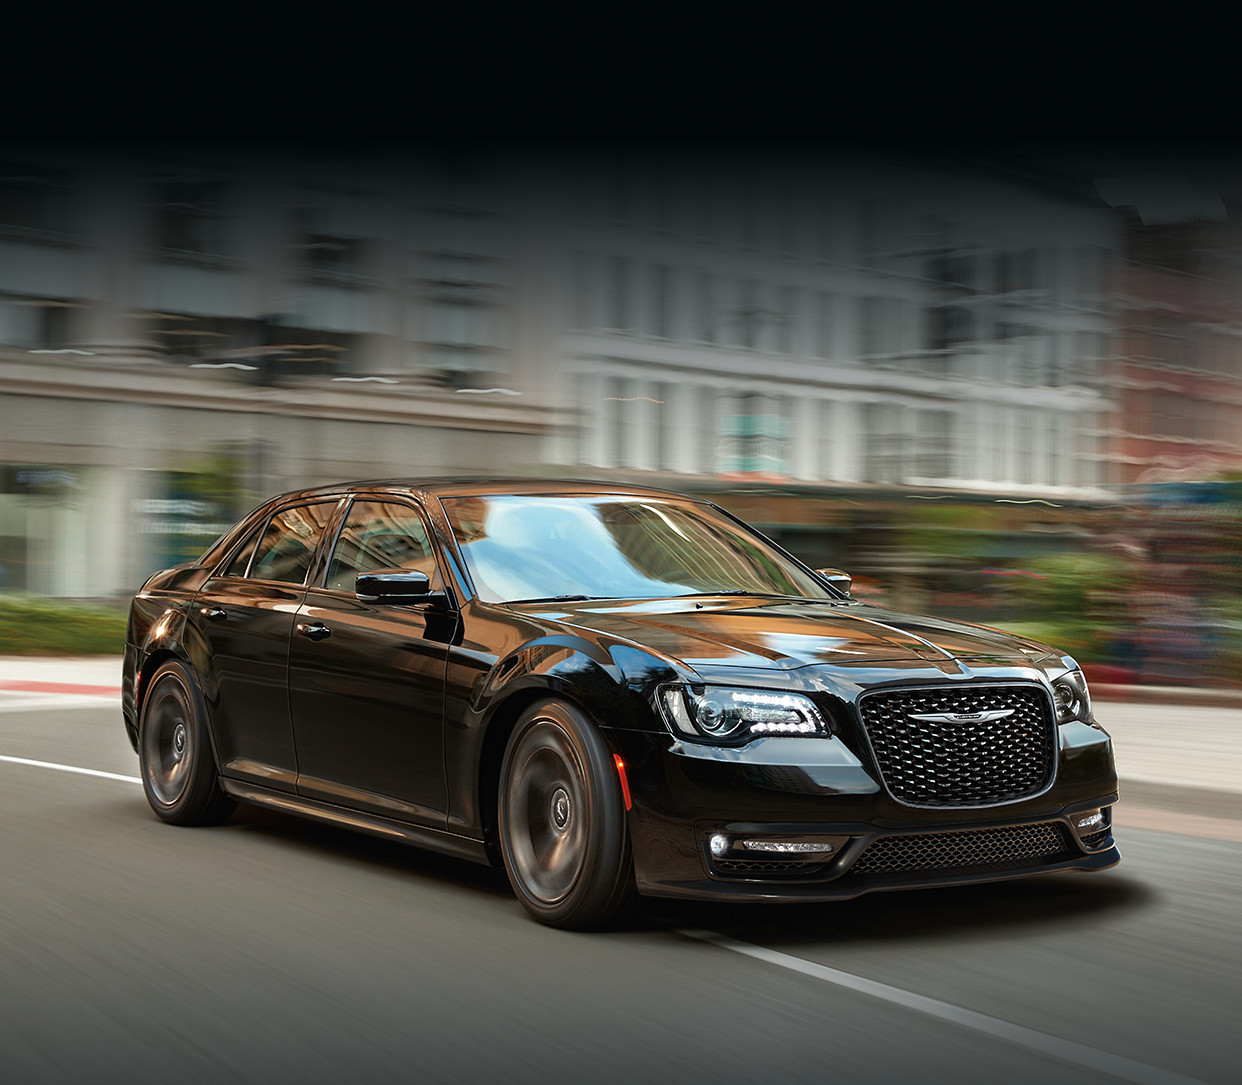 2019 Chrysler 300 Luxury Sedan